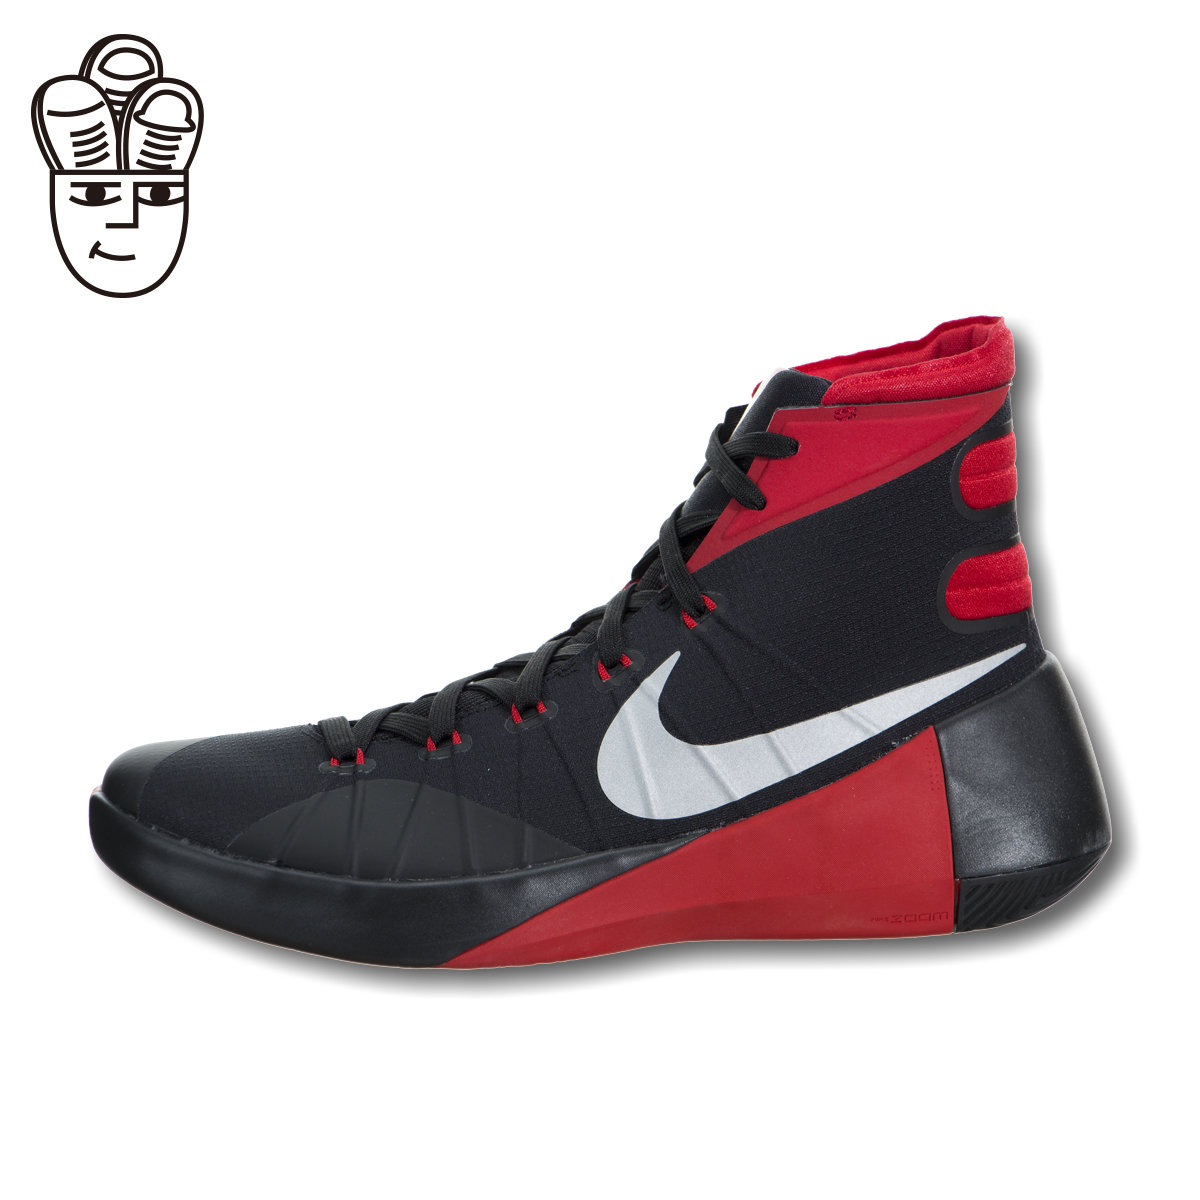 finest selection 756ca 032f8 Get Quotations · Nike hyperdunk 2015 nike men s actual basketball shoes  sports shoes black and red color